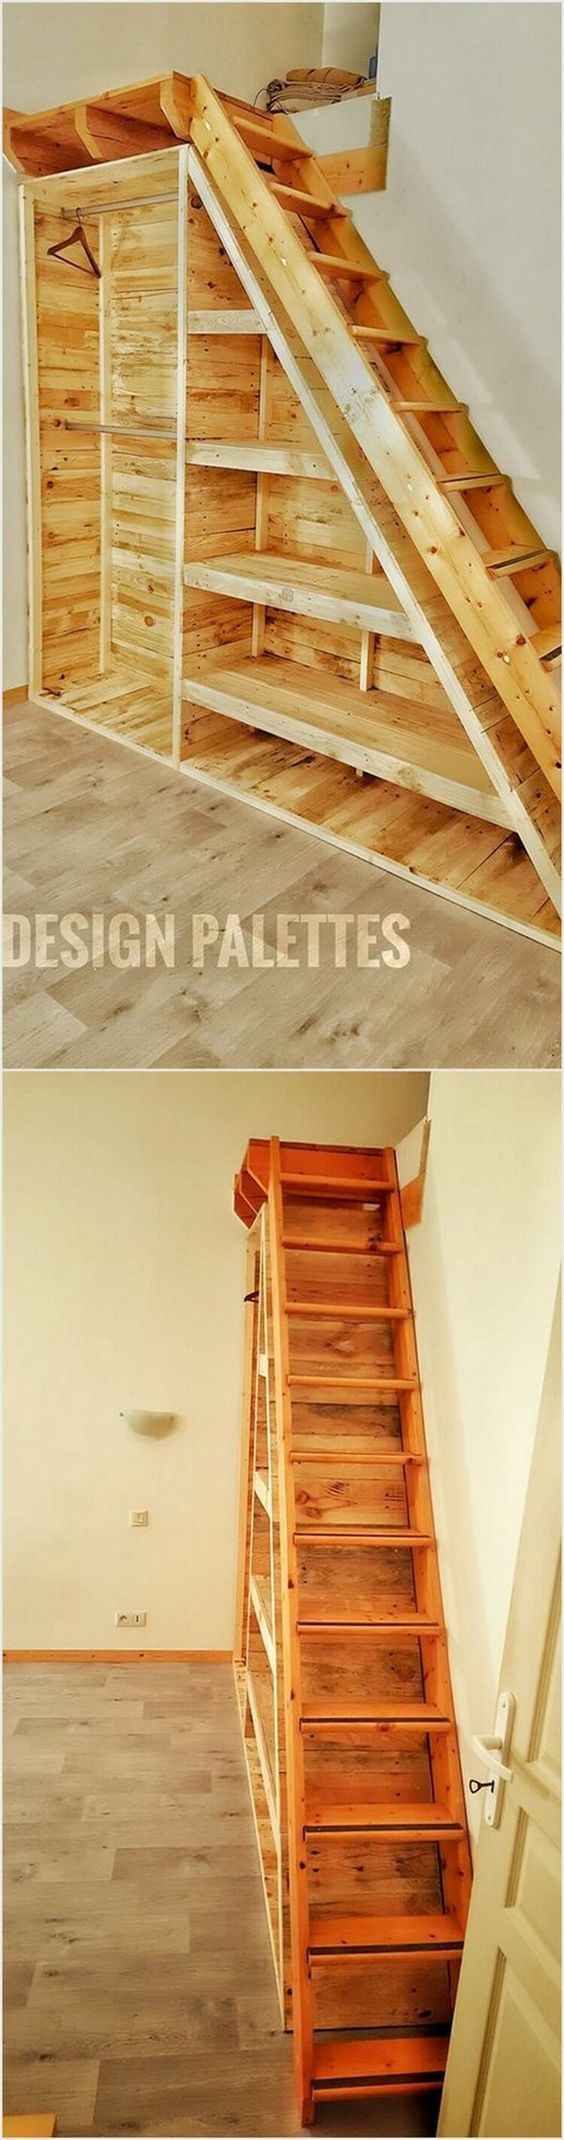 308 best Pallet Wardrobes images on Pinterest | Pallet ideas, Pallet ...